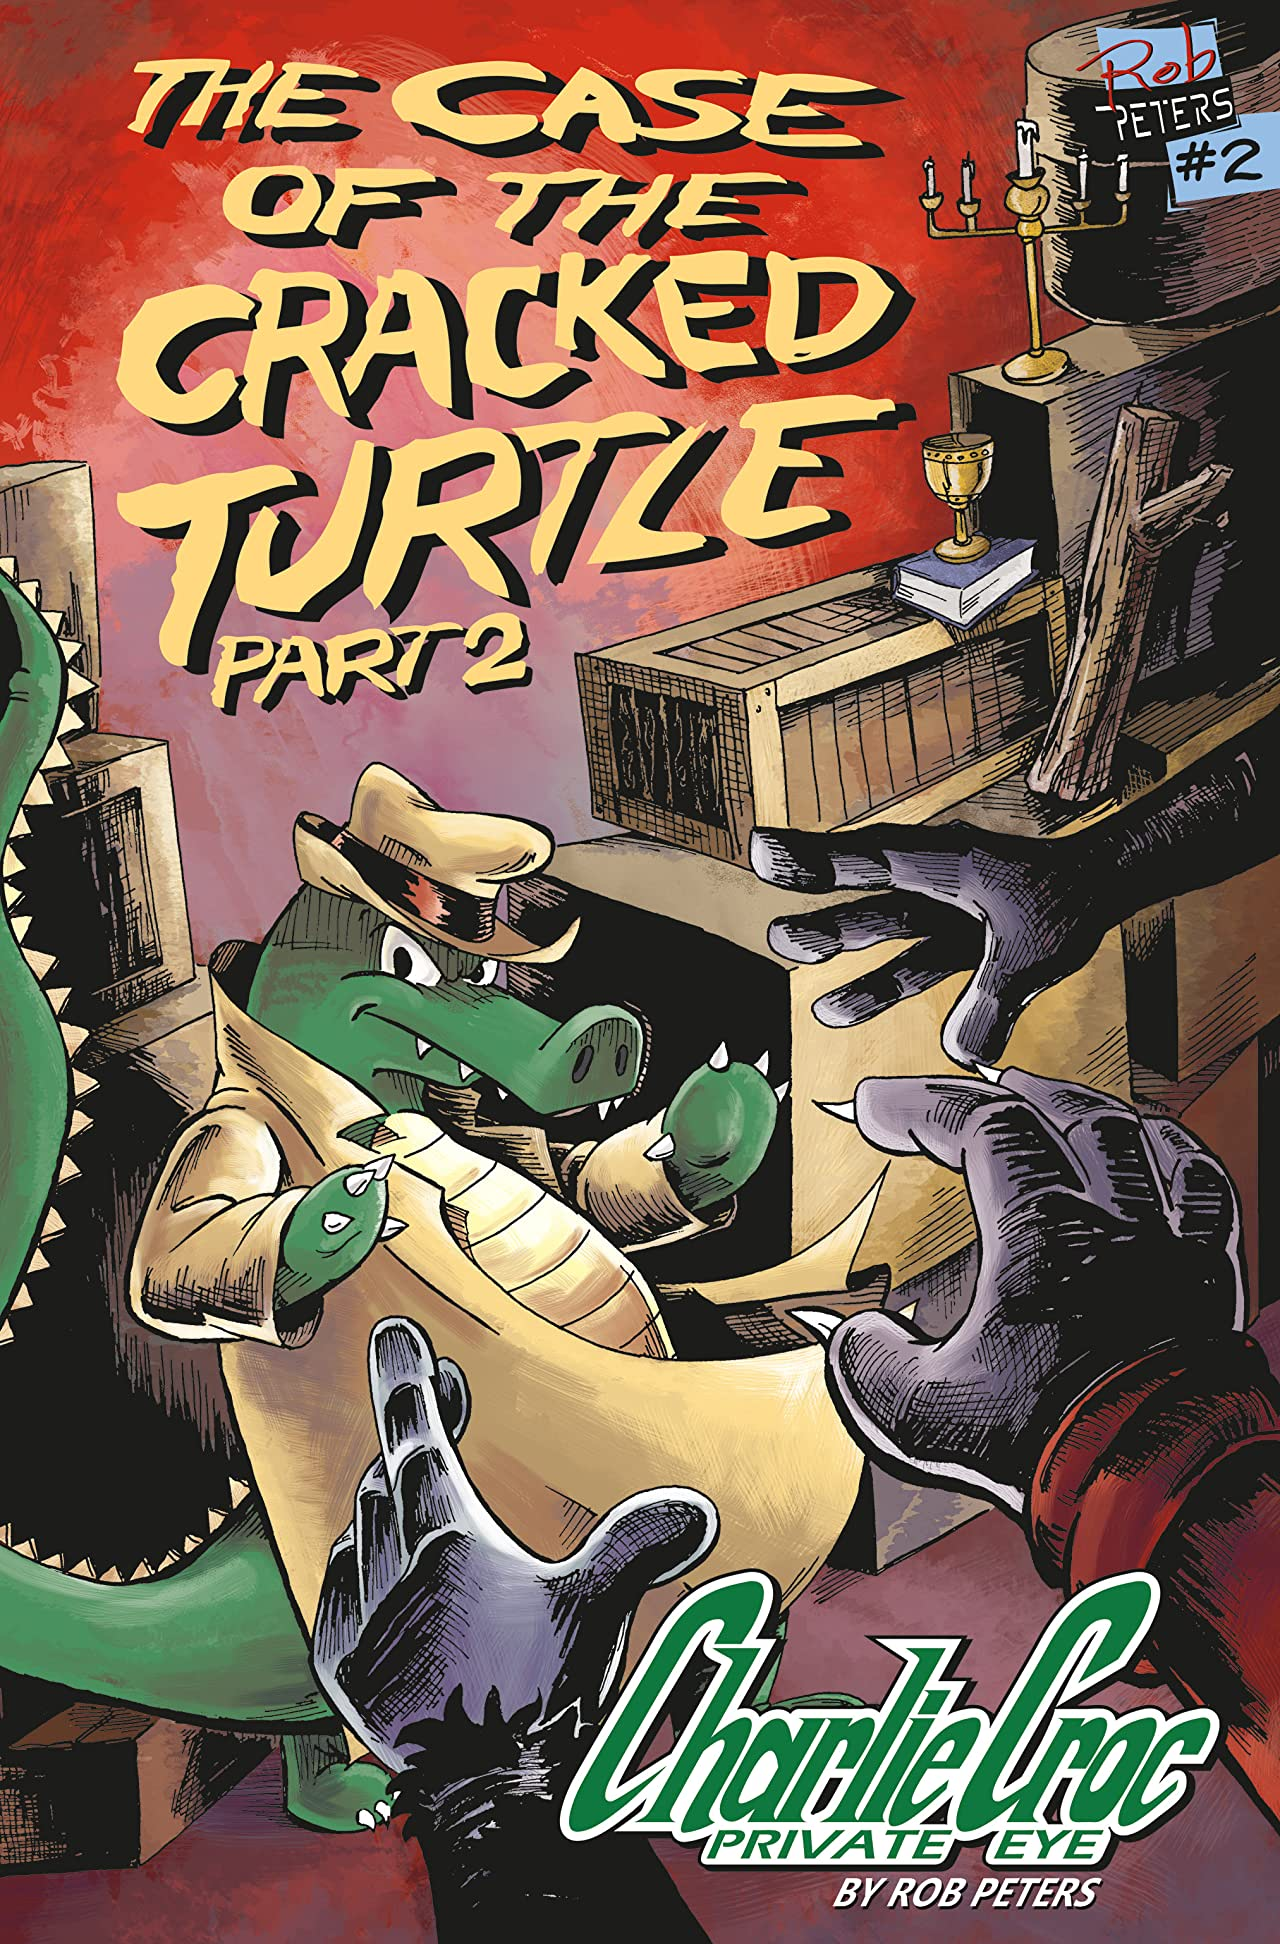 Charlie Croc: Private Eye #2